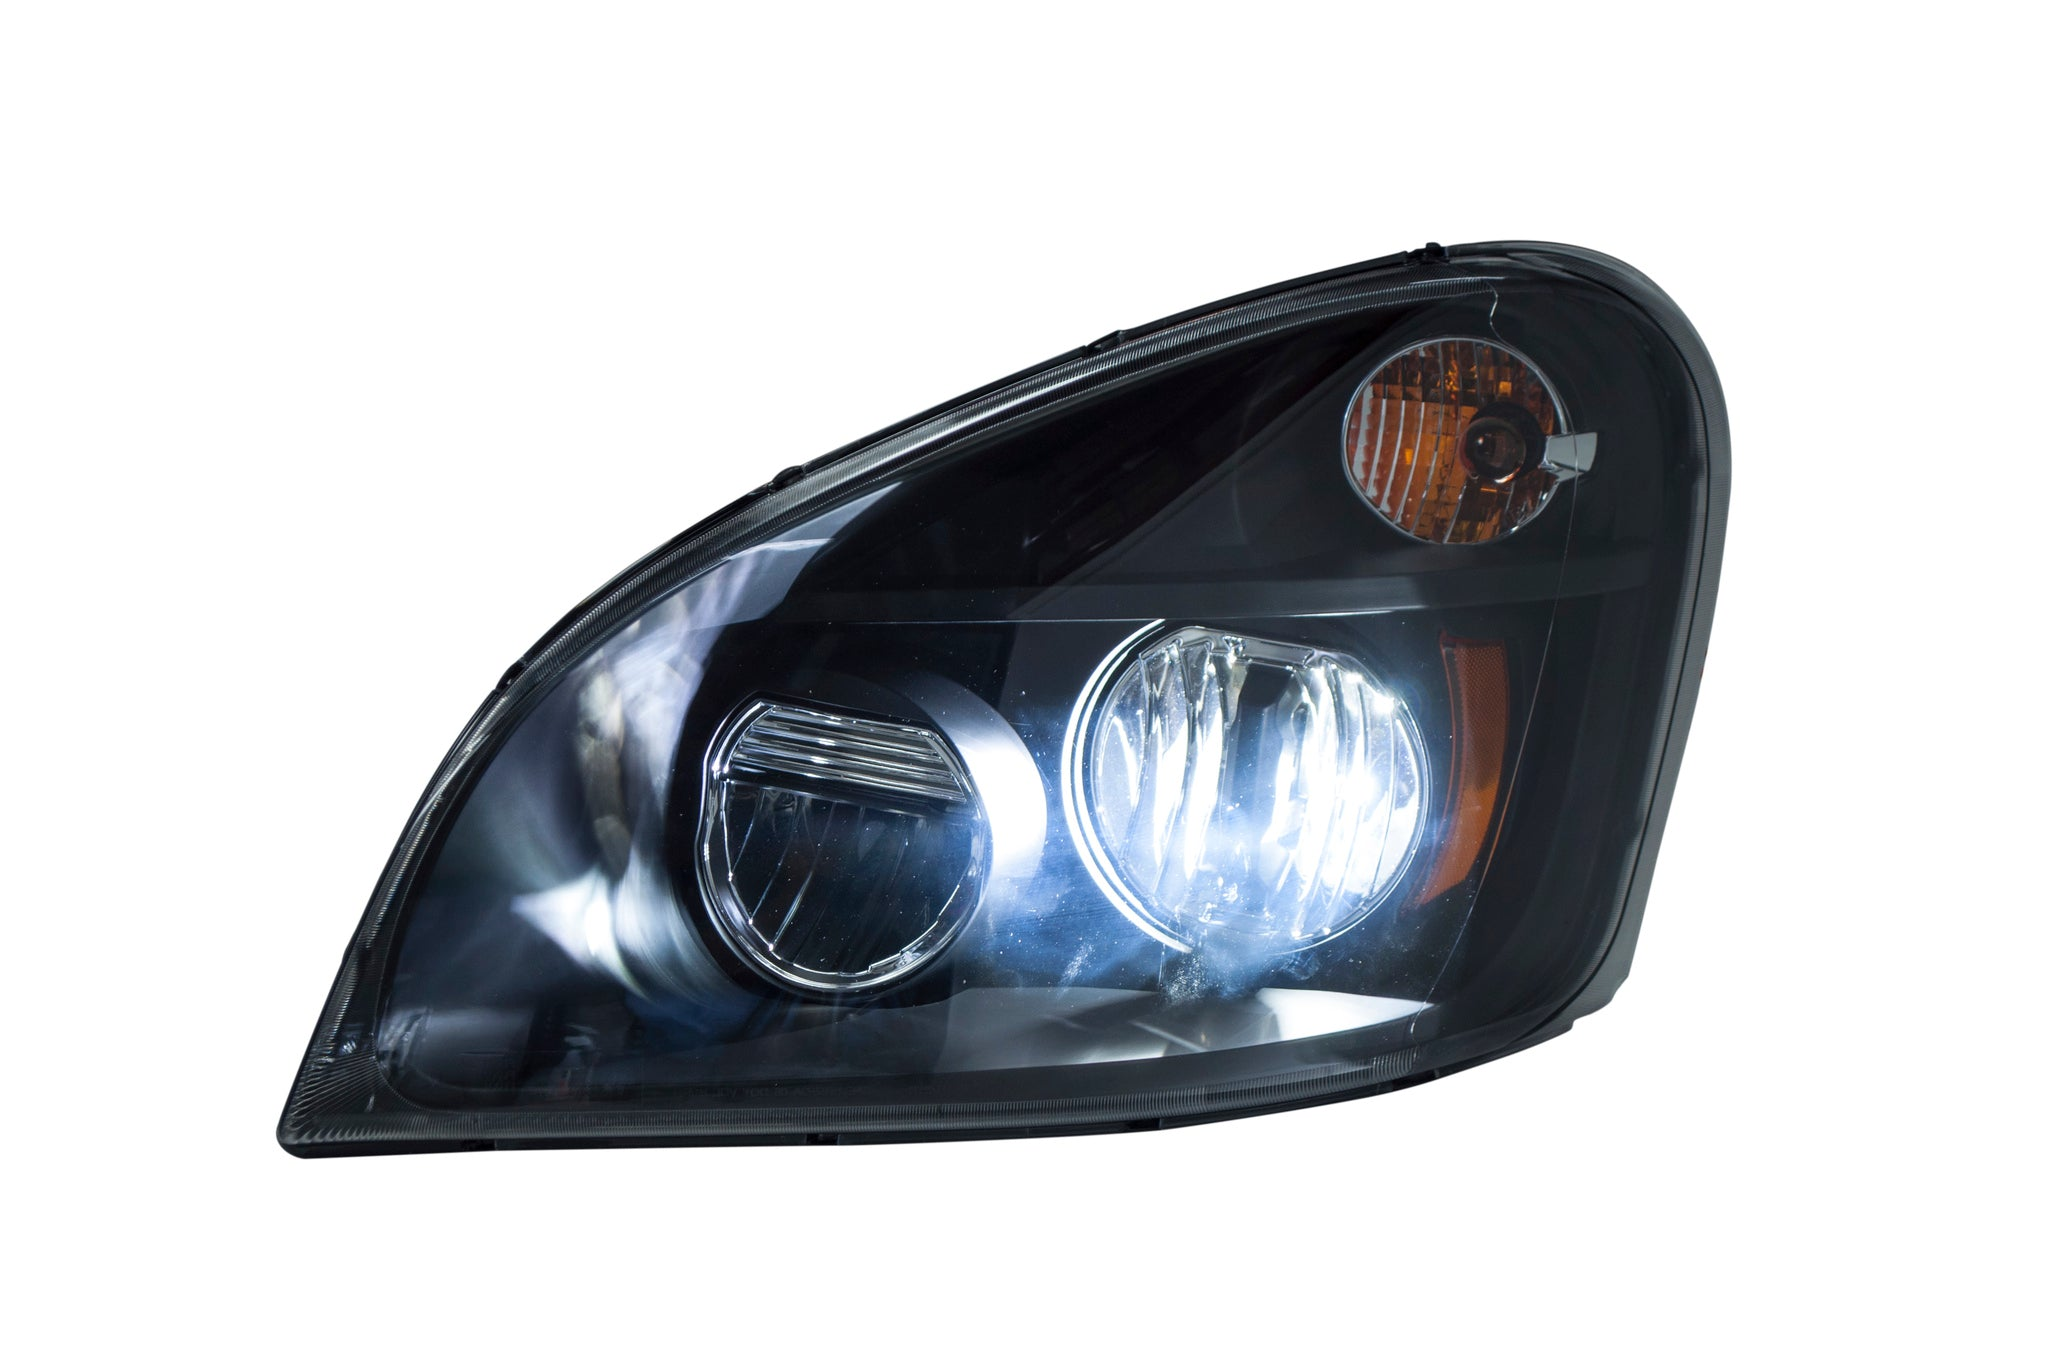 US02 4618_L_Low?v=1541136320 black reflector projector headlight with led light bar for